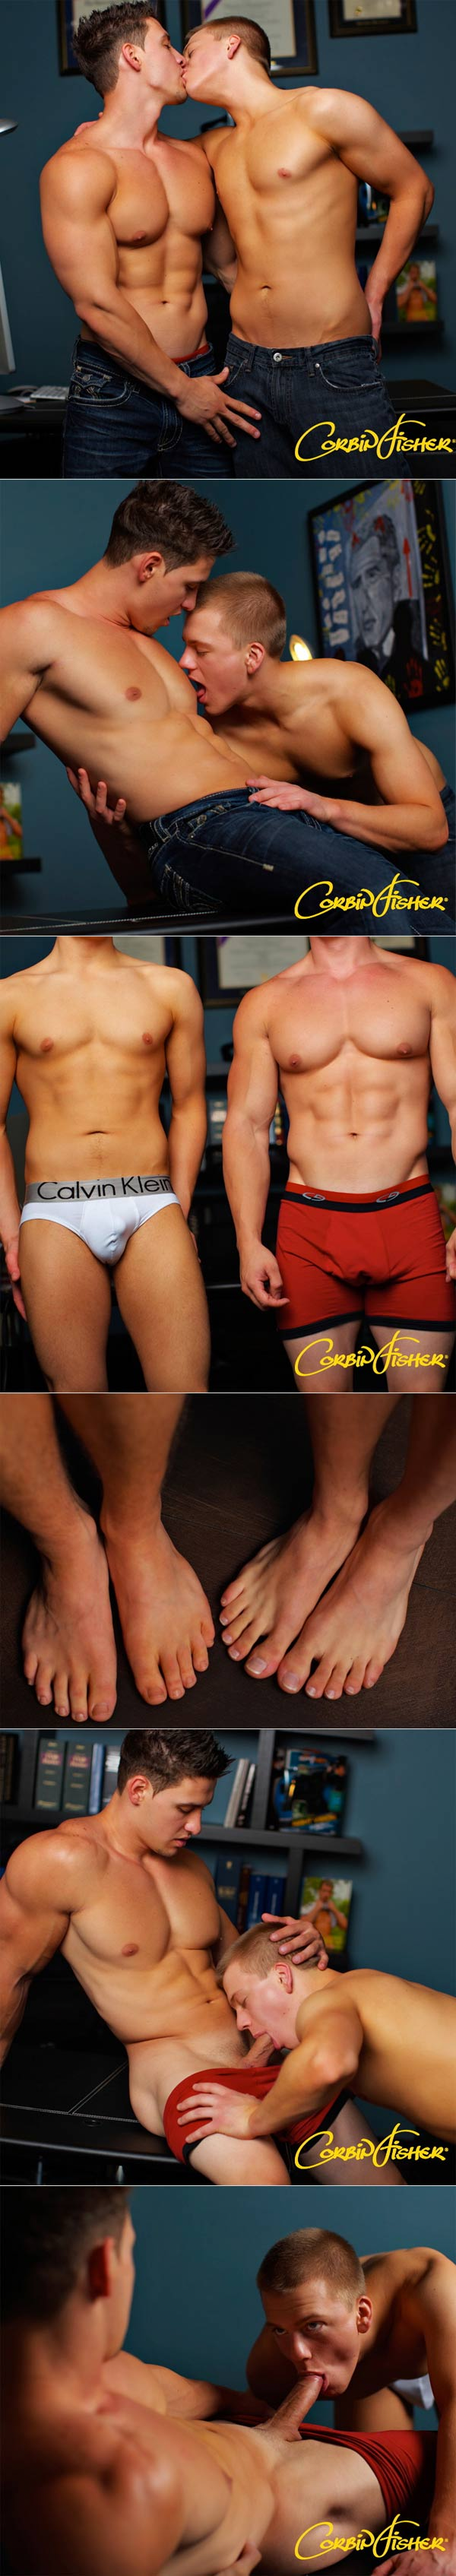 Avery & Cain (Breaking In Avery) at CorbinFisher